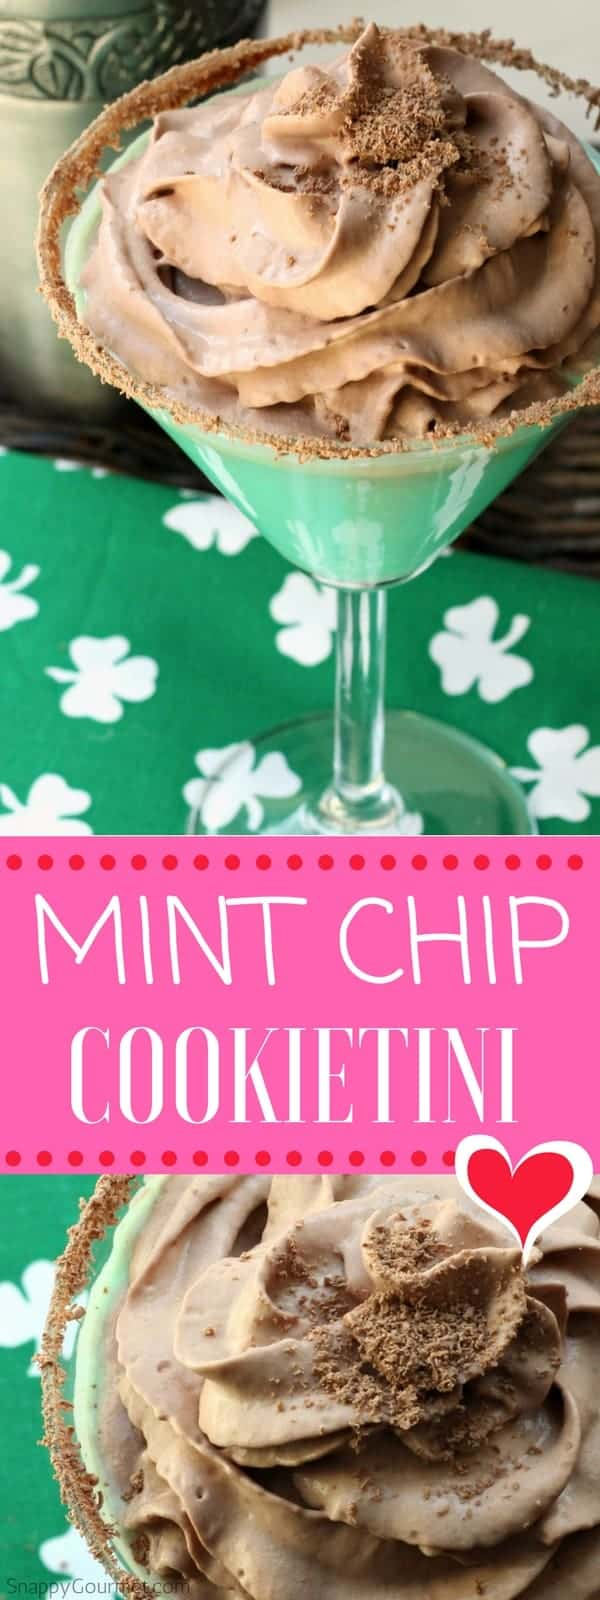 Mint Chip Cookietini Recipe - easy mint cocktail with creme de menthe and cookie dough vodka. Like a Thin Mint shot!